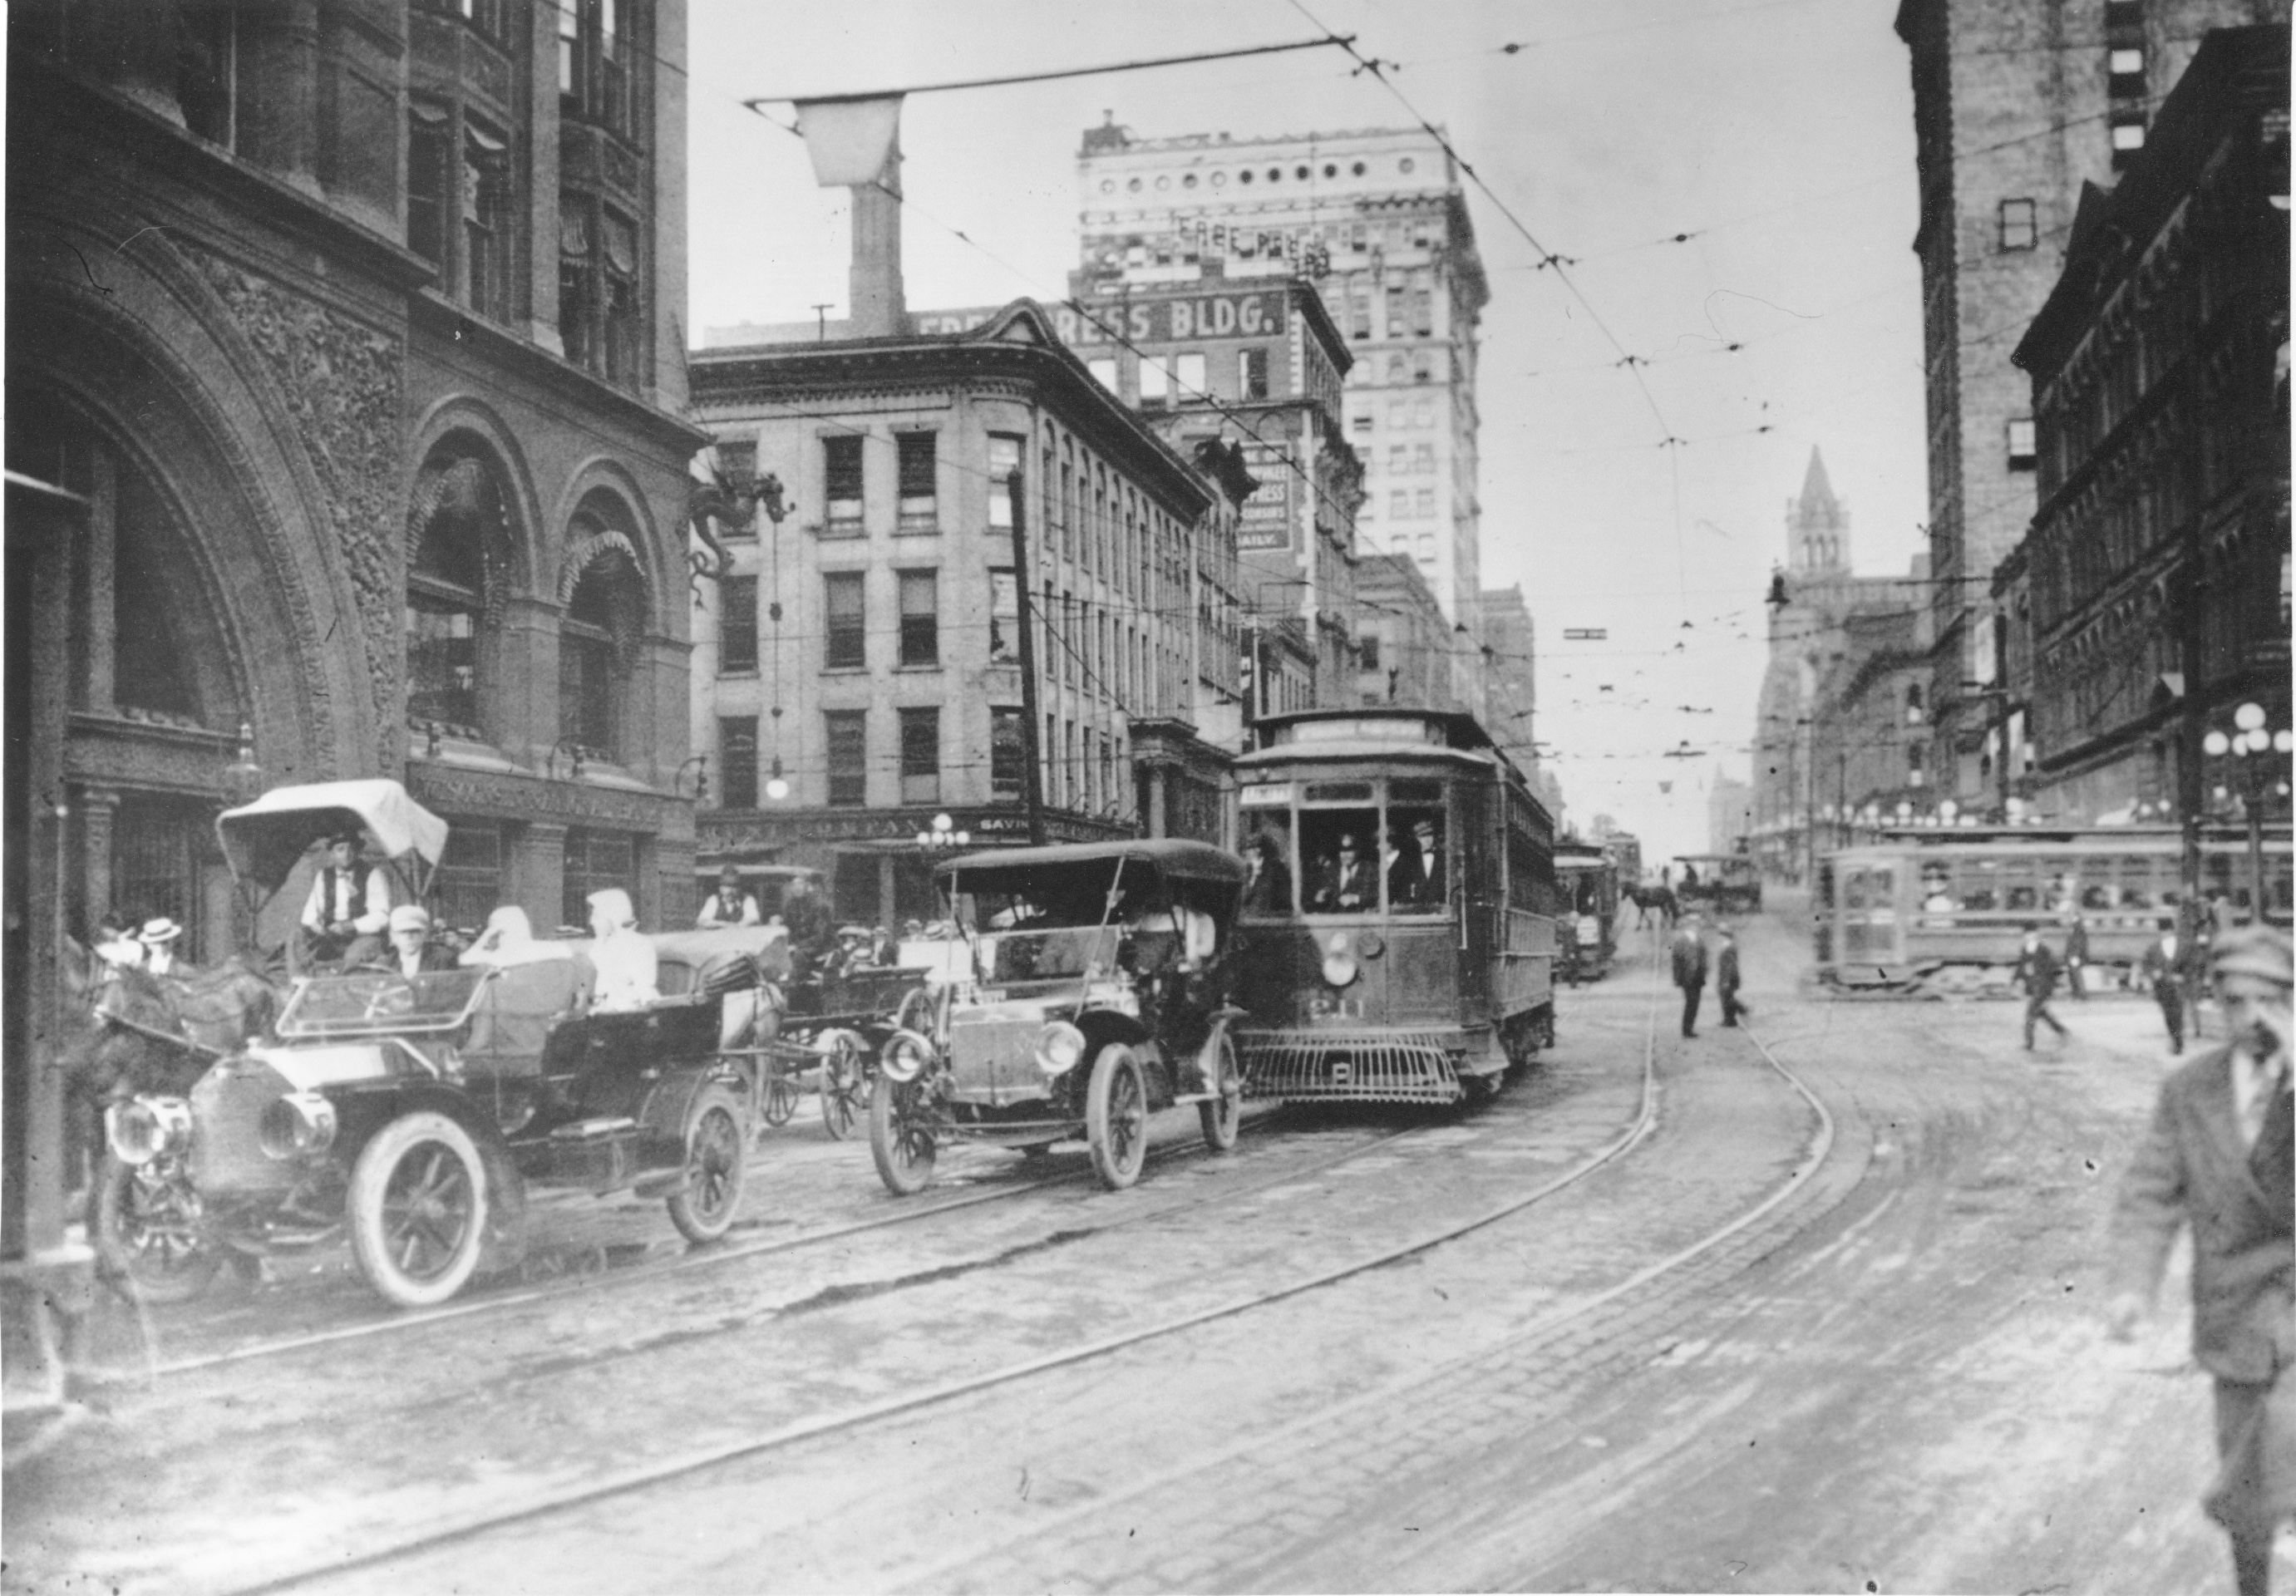 Automobiles, a horse and buggy, and trolleys share the road on E. Wisconsin Avenue in the early twentieth century.